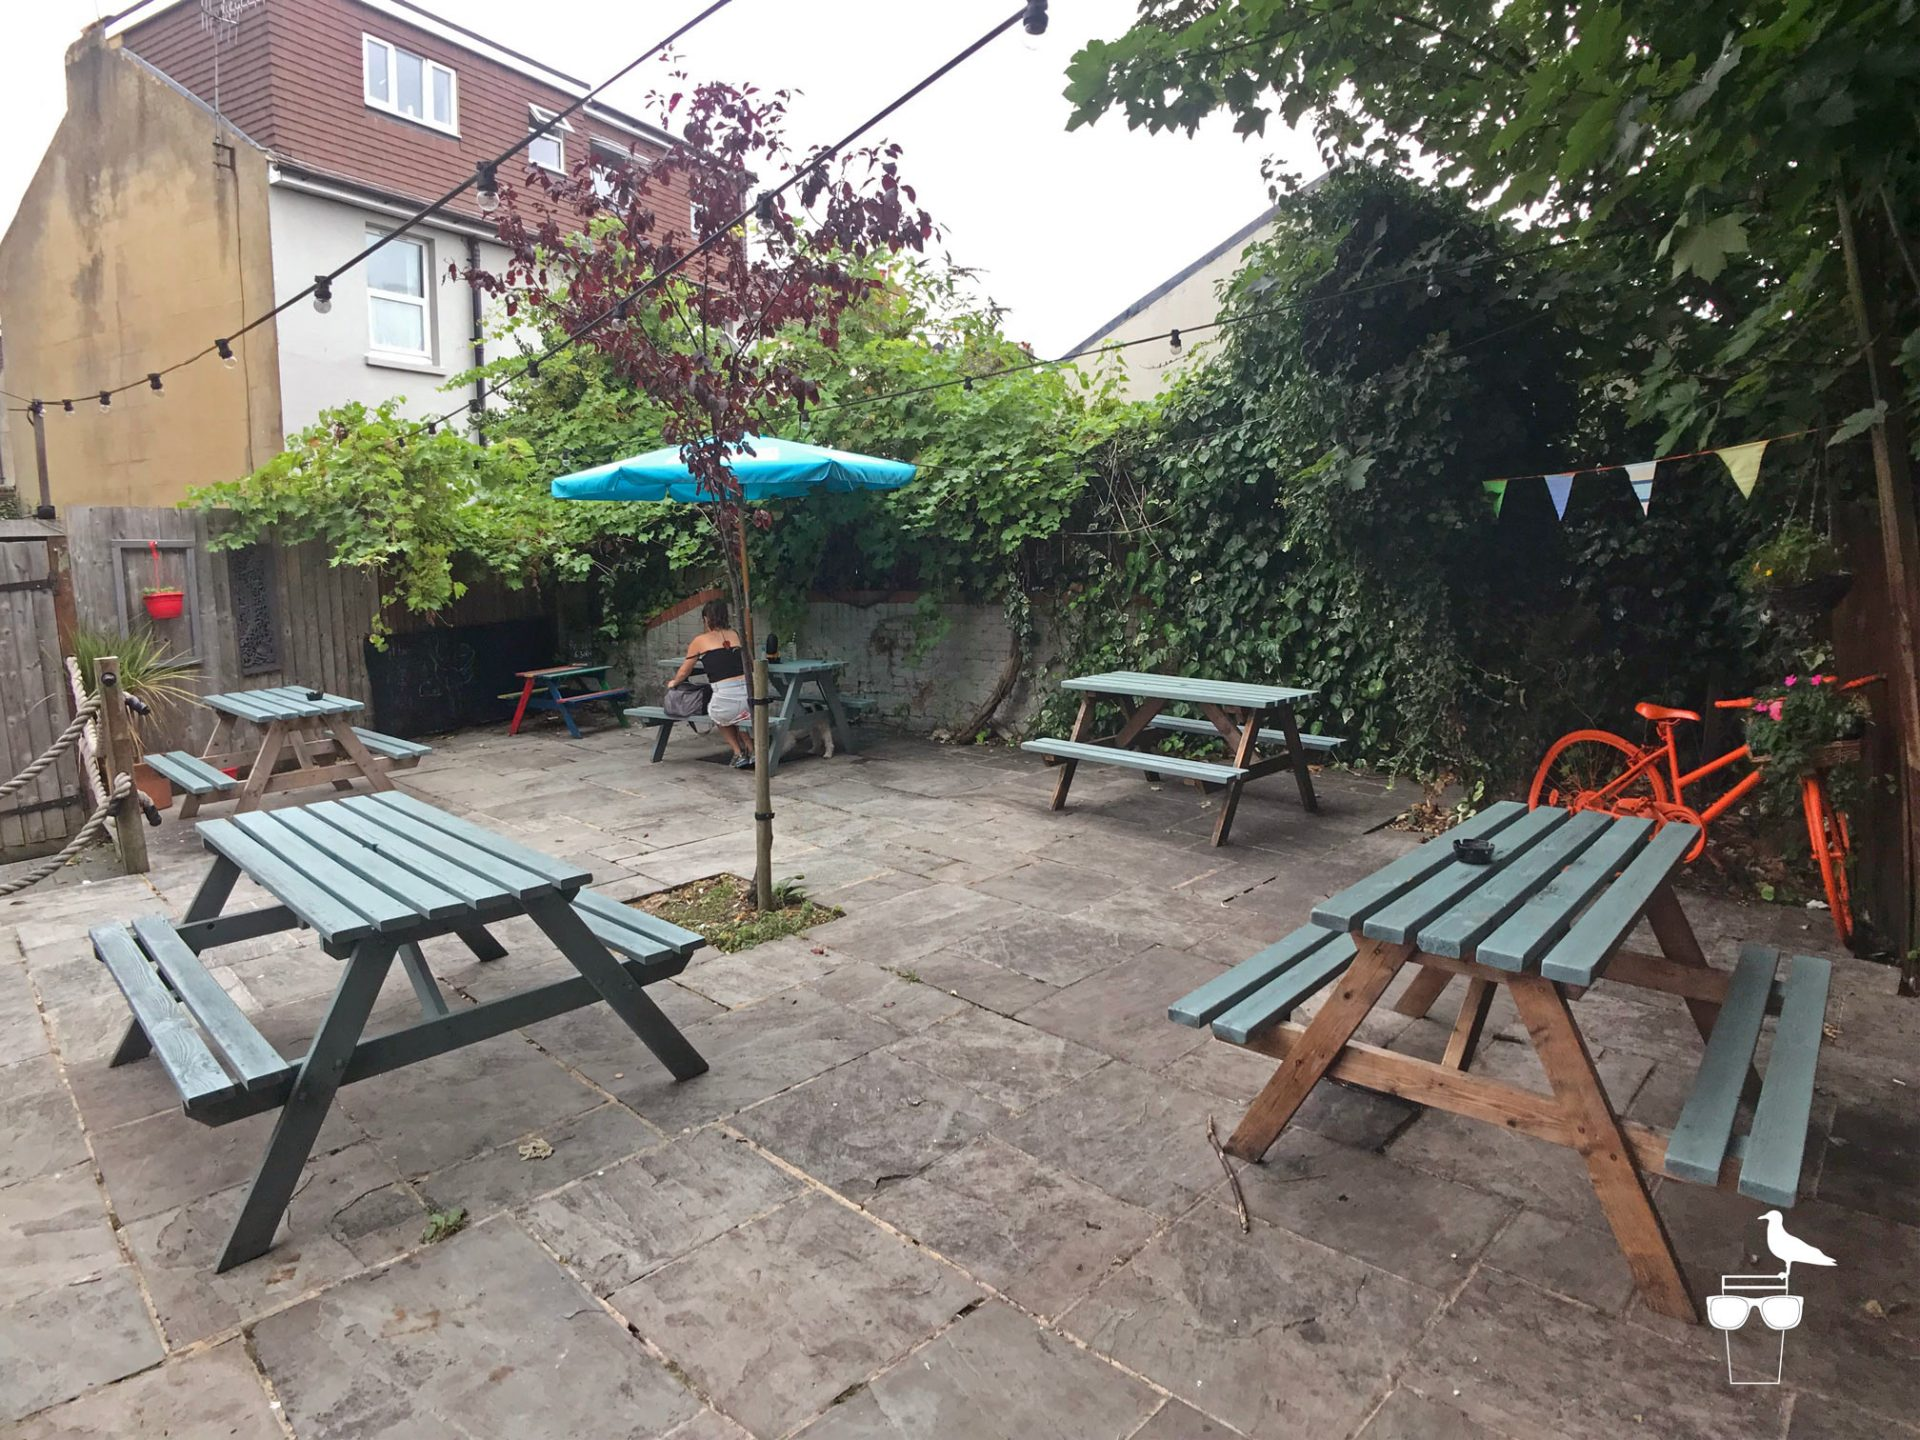 martha-gunn-pub-brighton-outside-garden-2